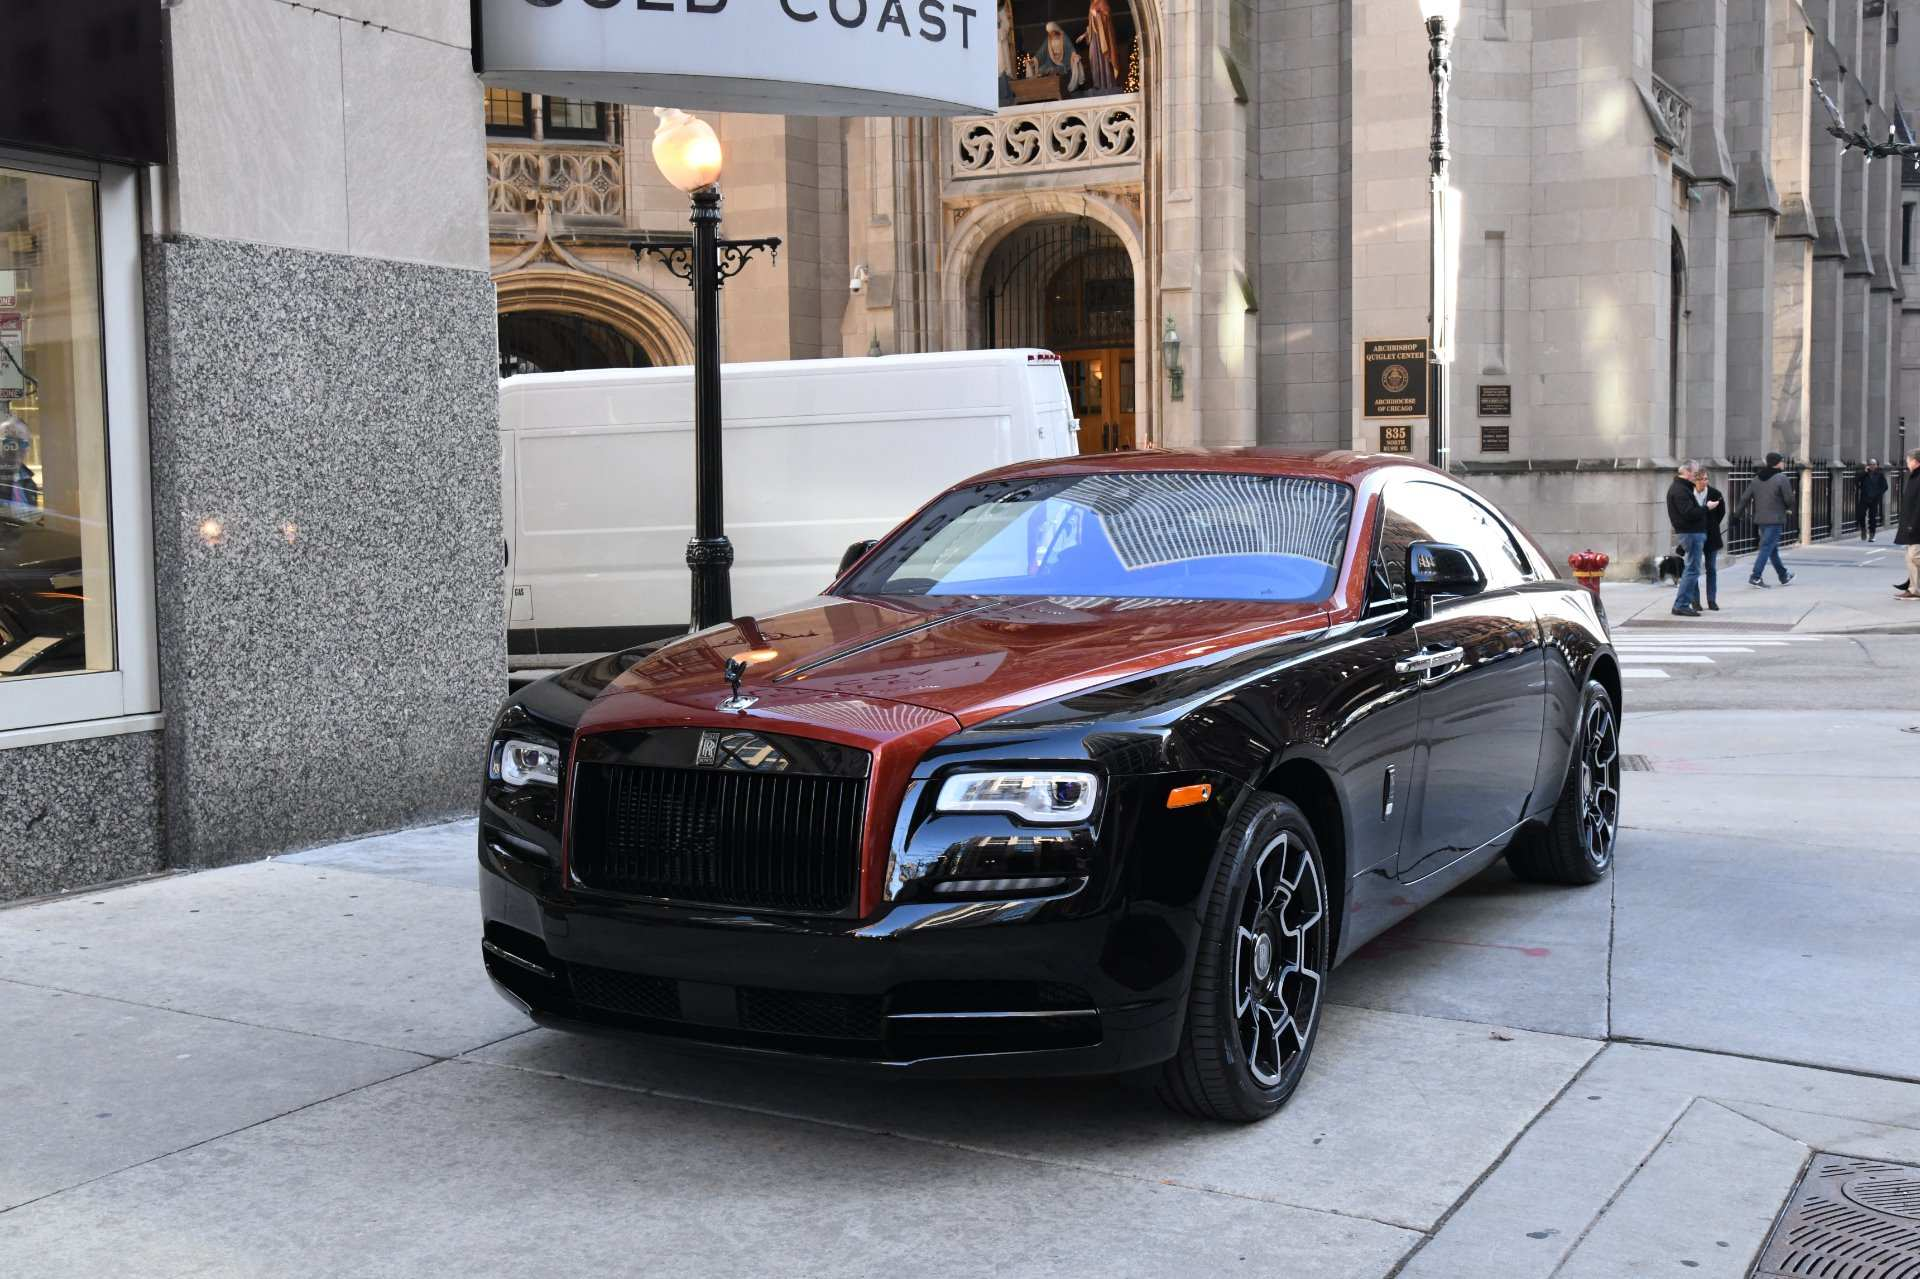 28 Concept of 2019 Rolls Royce Wraith Performance and New Engine by 2019 Rolls Royce Wraith